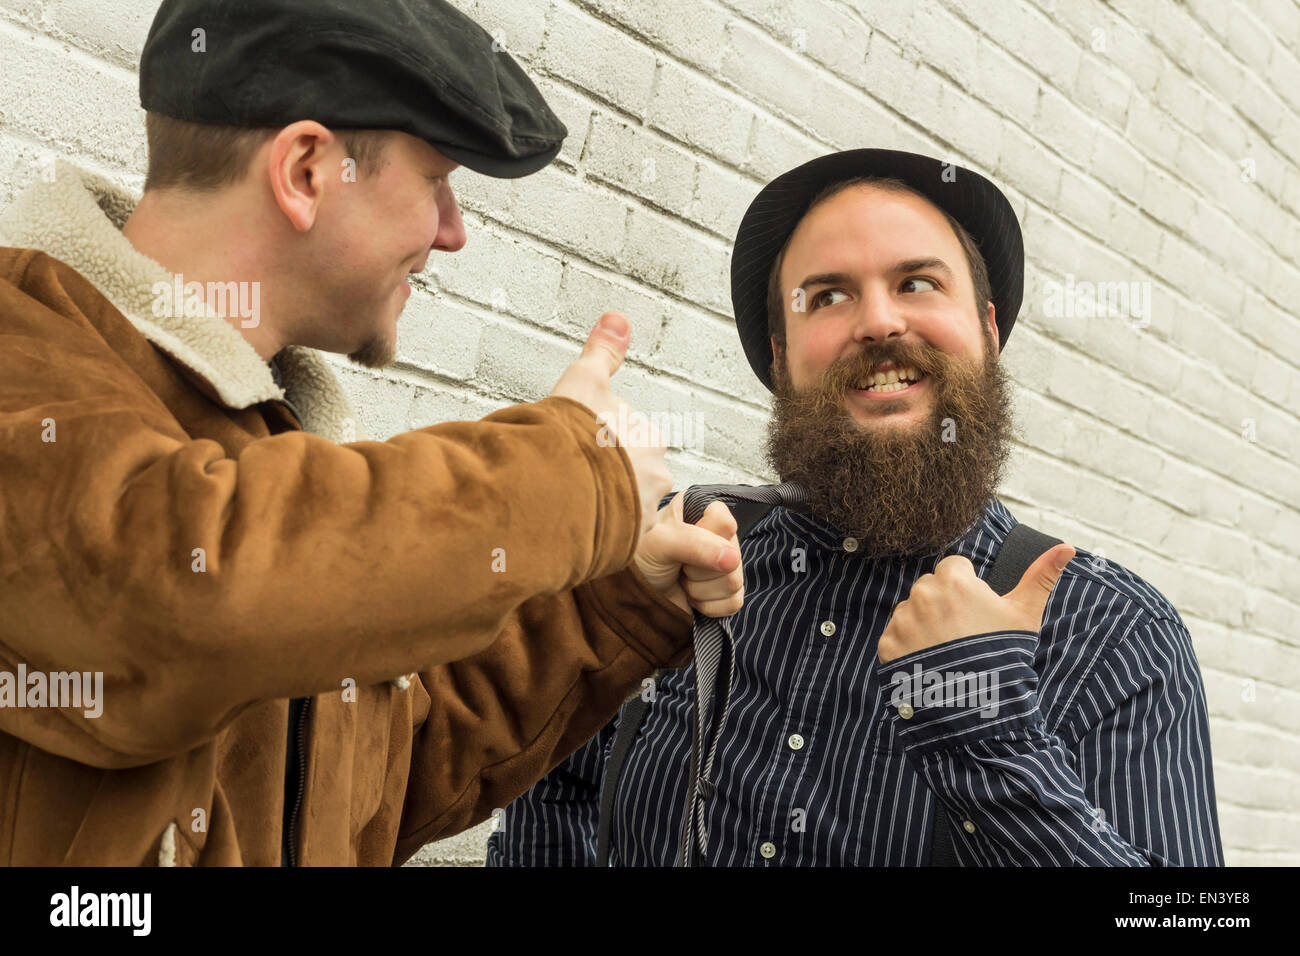 Two silly enemies great through clenched teeth - Stock Image